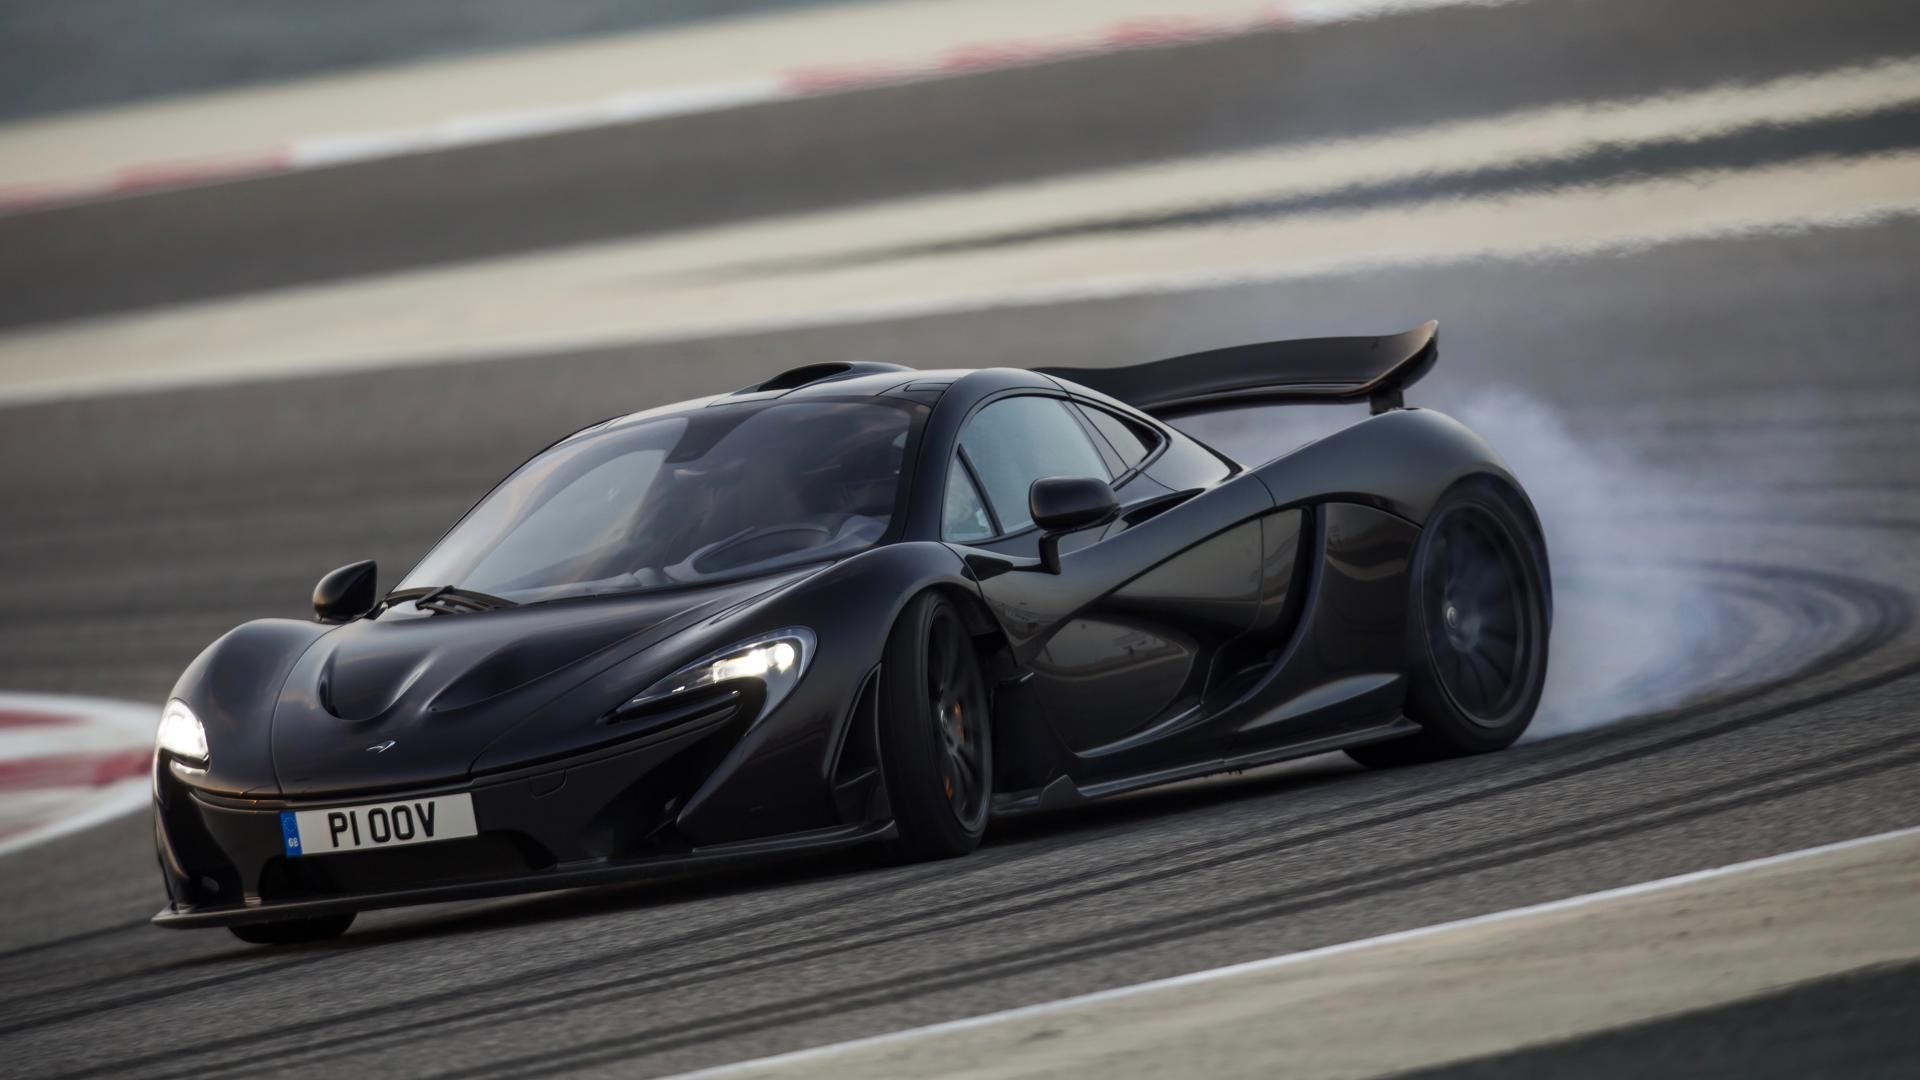 The McLaren P1 is now five years-old. This 903bhp hypercar is still